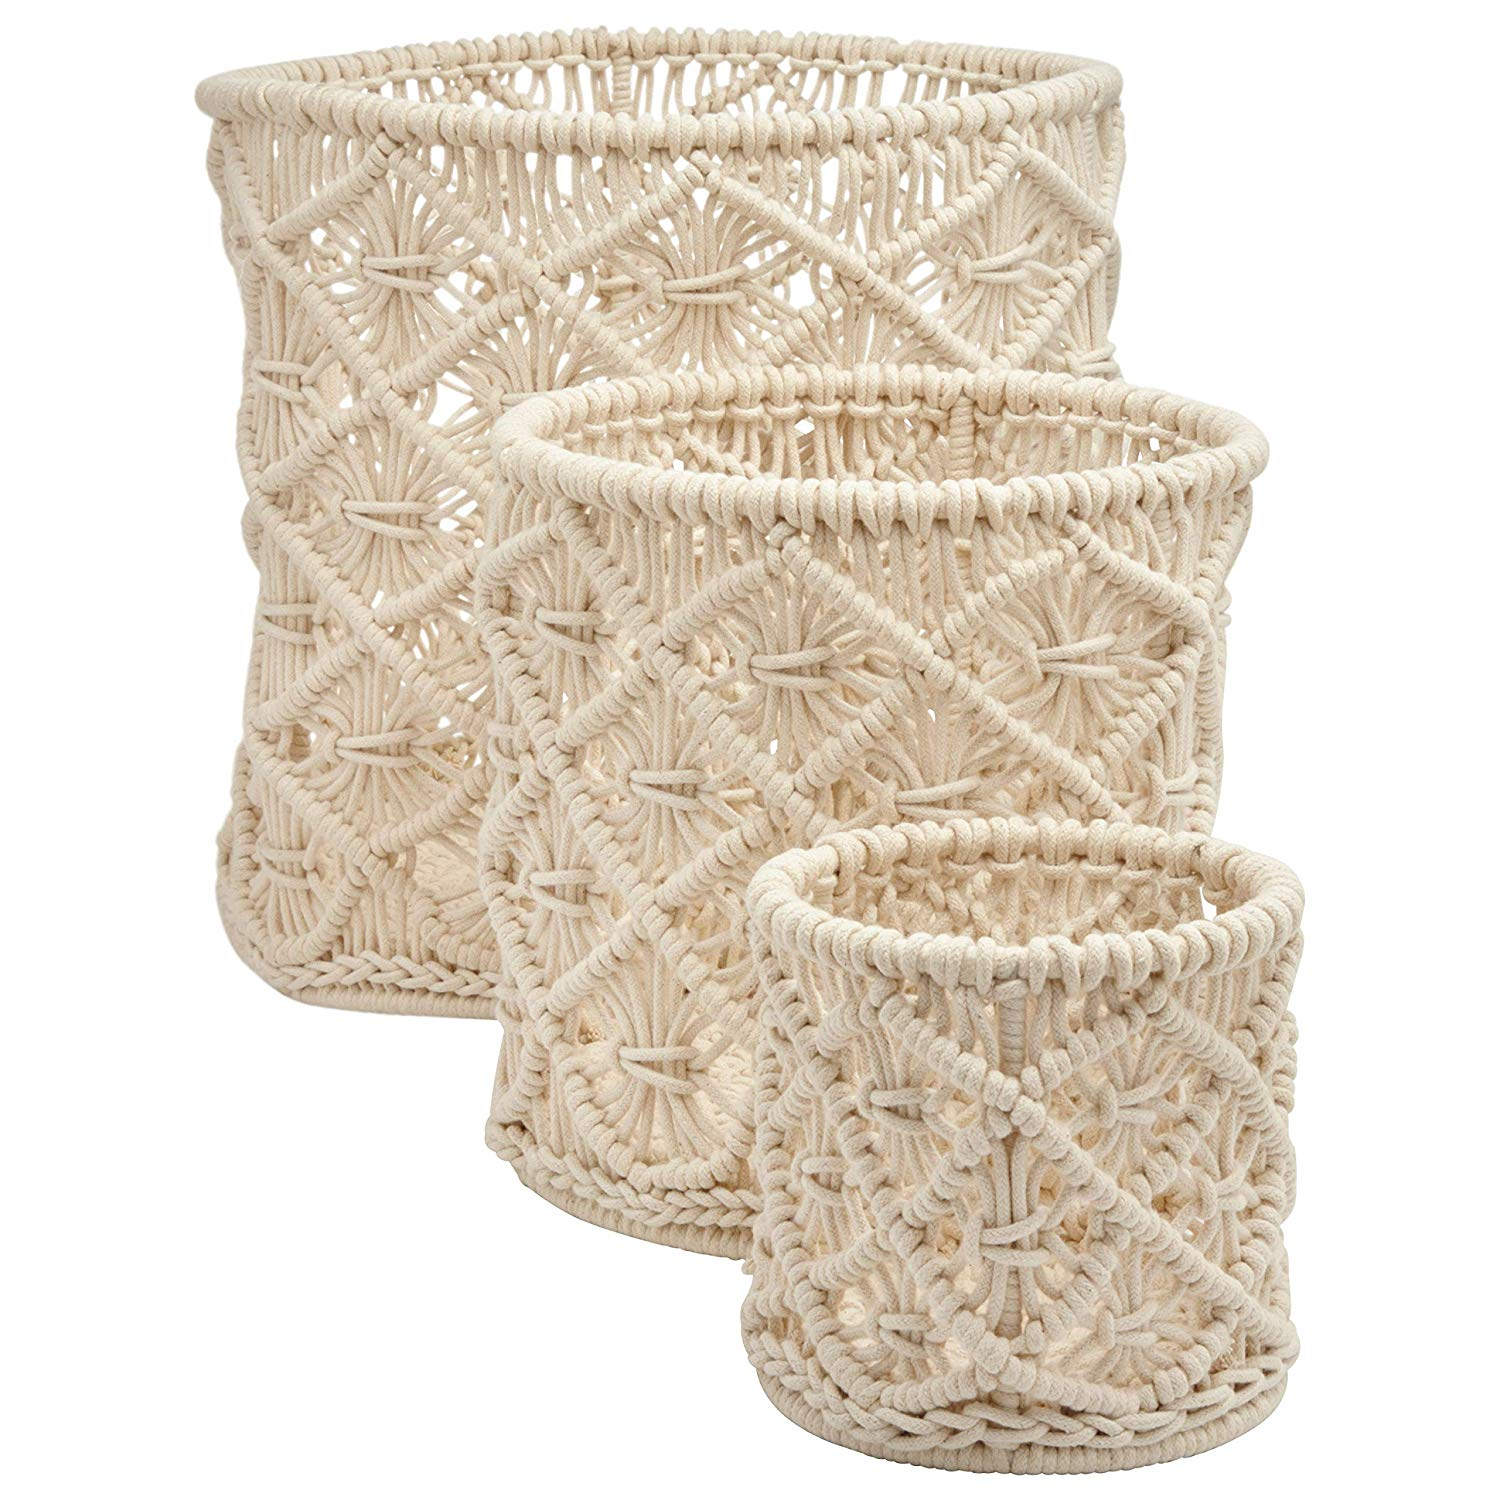 macrame storage totes in modern offwhite